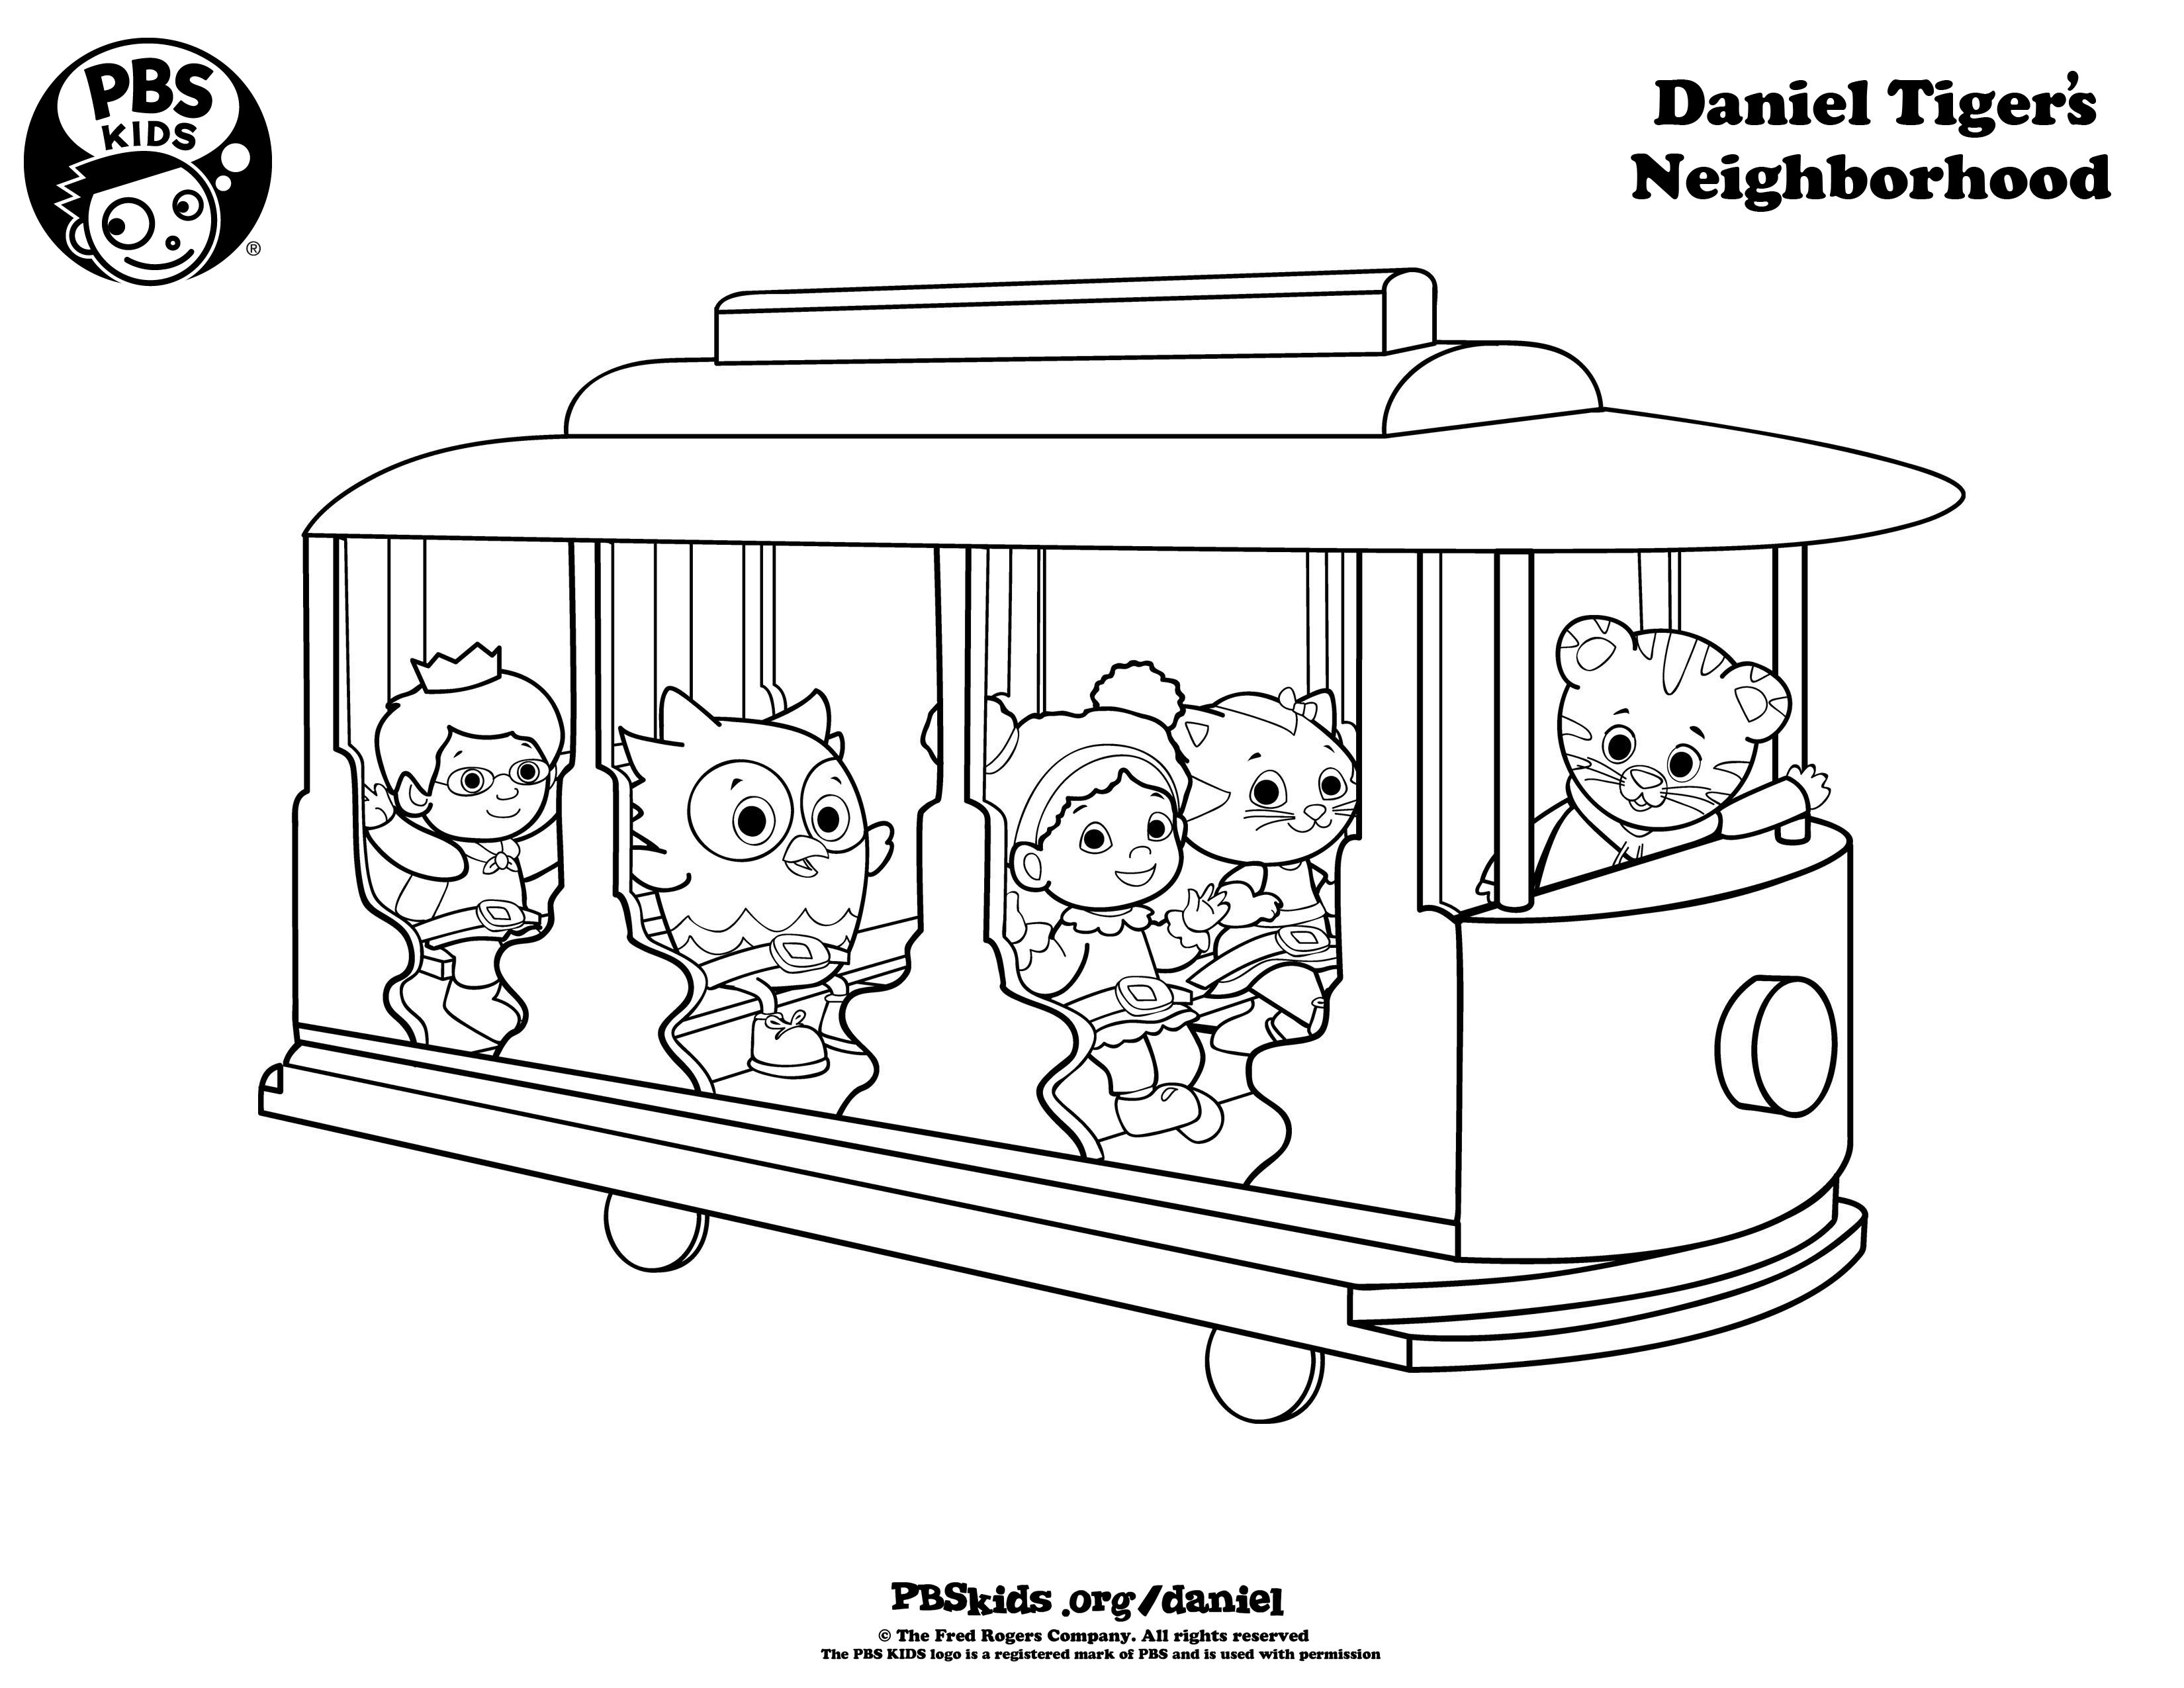 Daniel Tiger Coloring Pages - Best Coloring Pages For Kids - Free Printable Daniel Tiger Coloring Pages